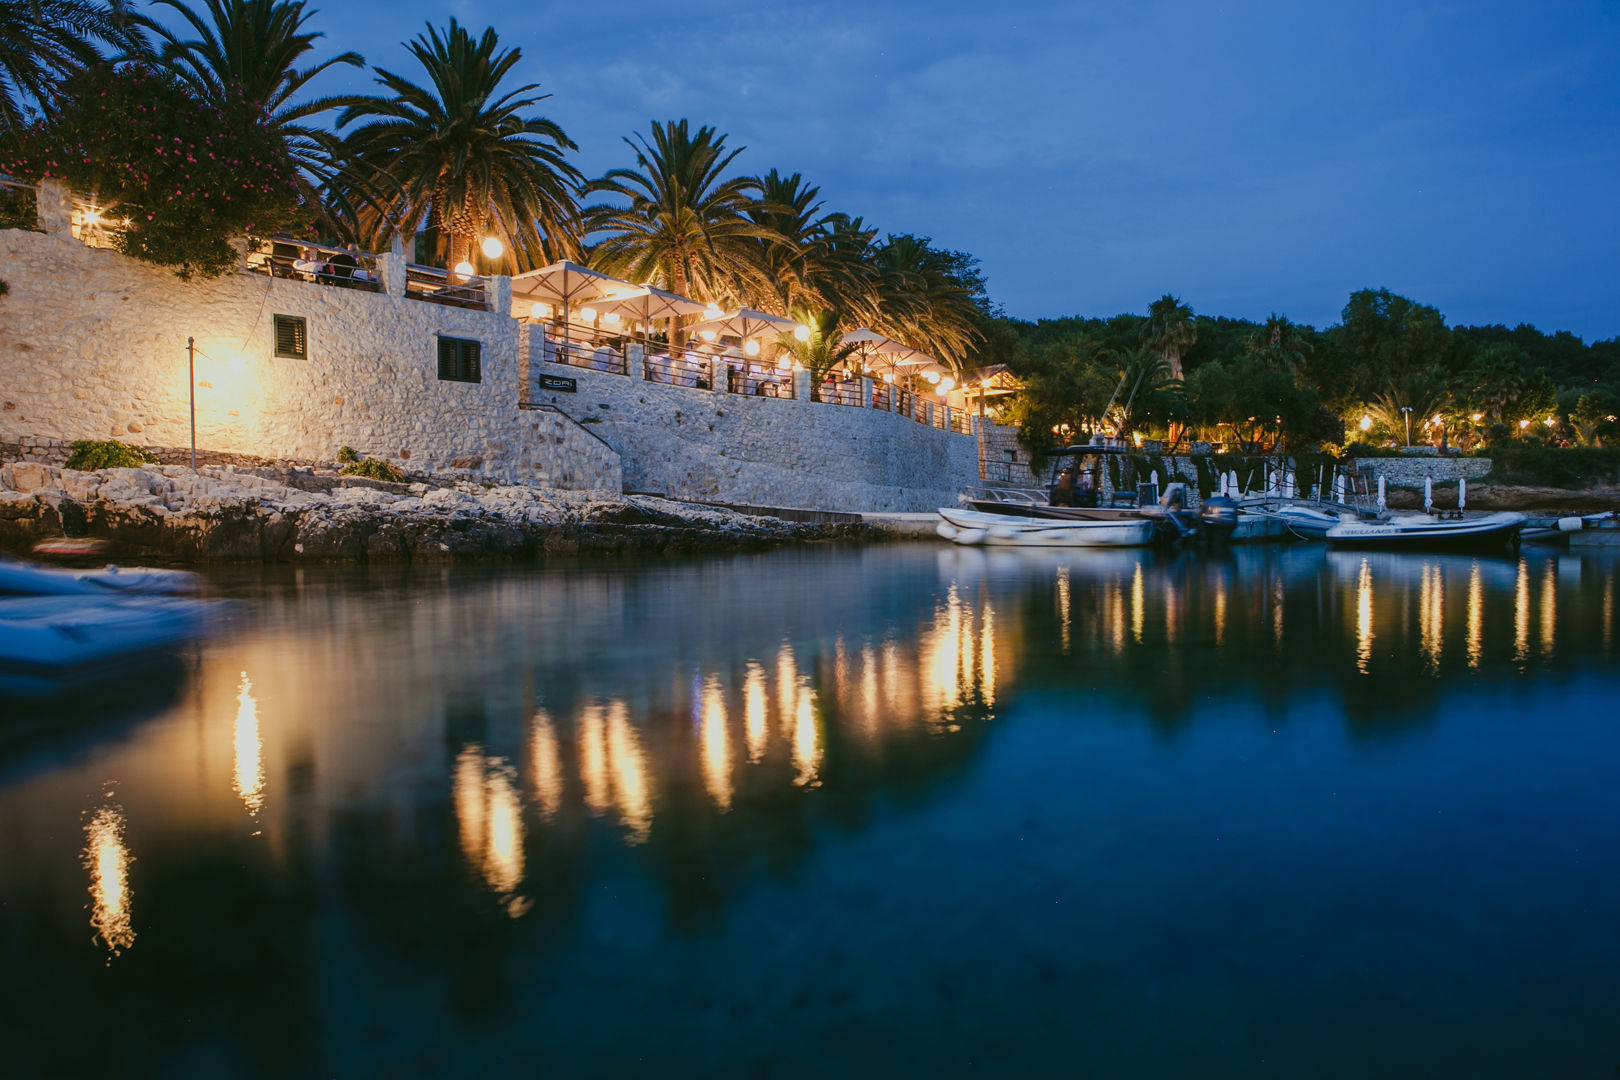 The view from the water of restaurant Zori on Palmizana island close to Hvar